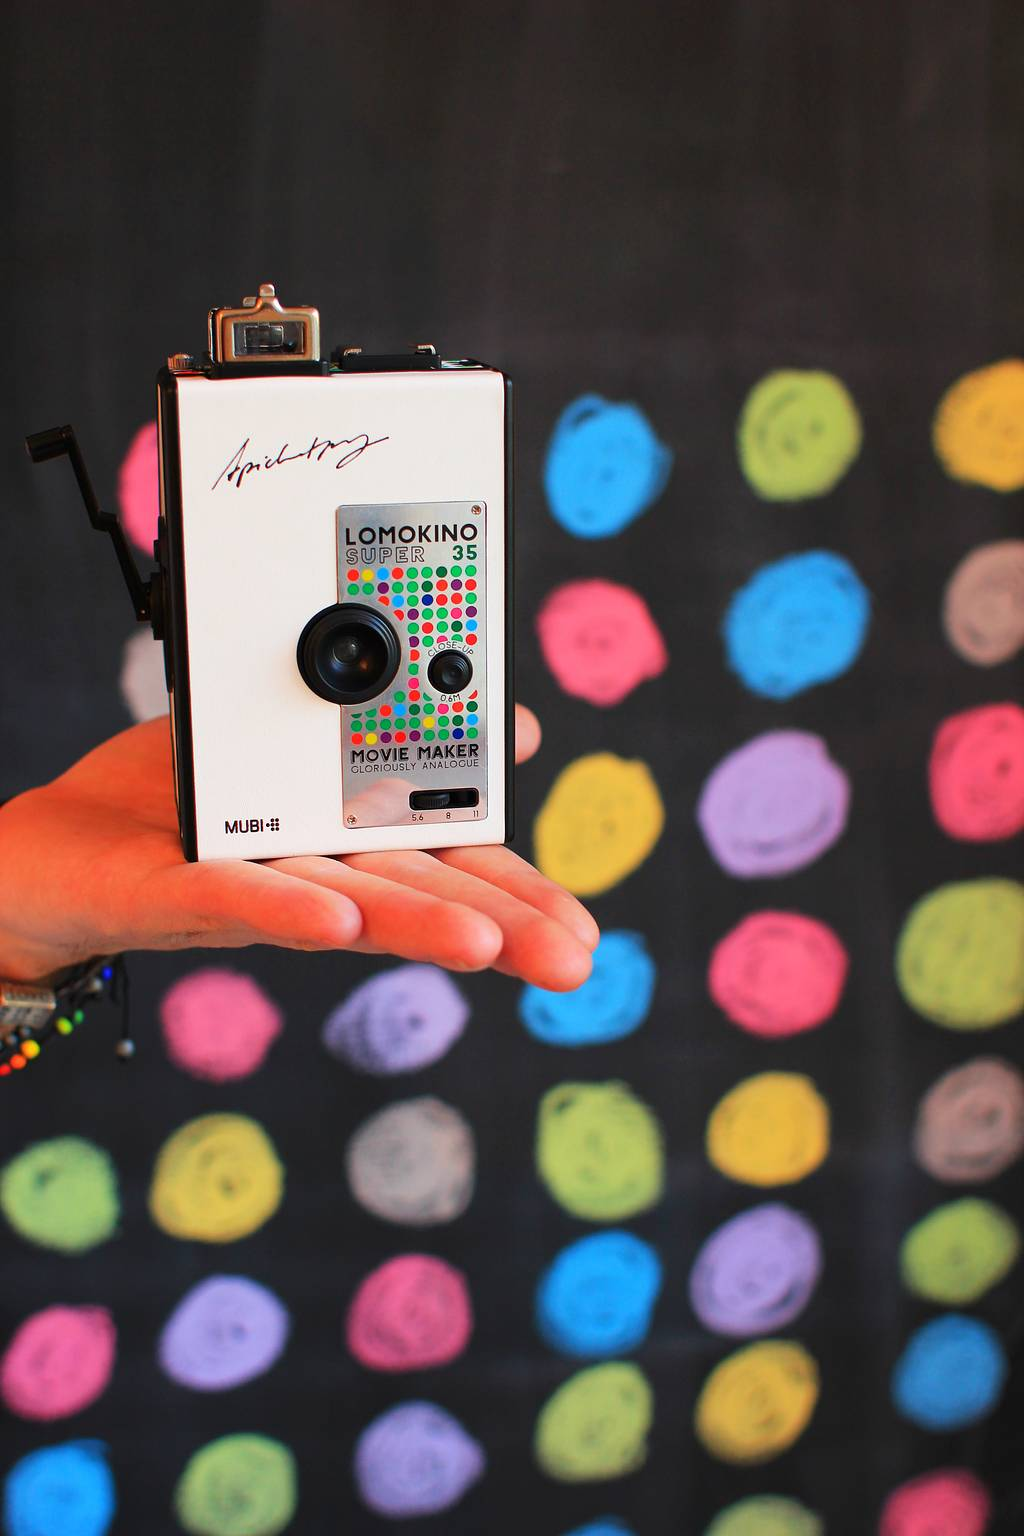 ASHES @ Lomography Gallery Store Berlin – The Great LomoKino Mubi Launch in the Rear View Mirror